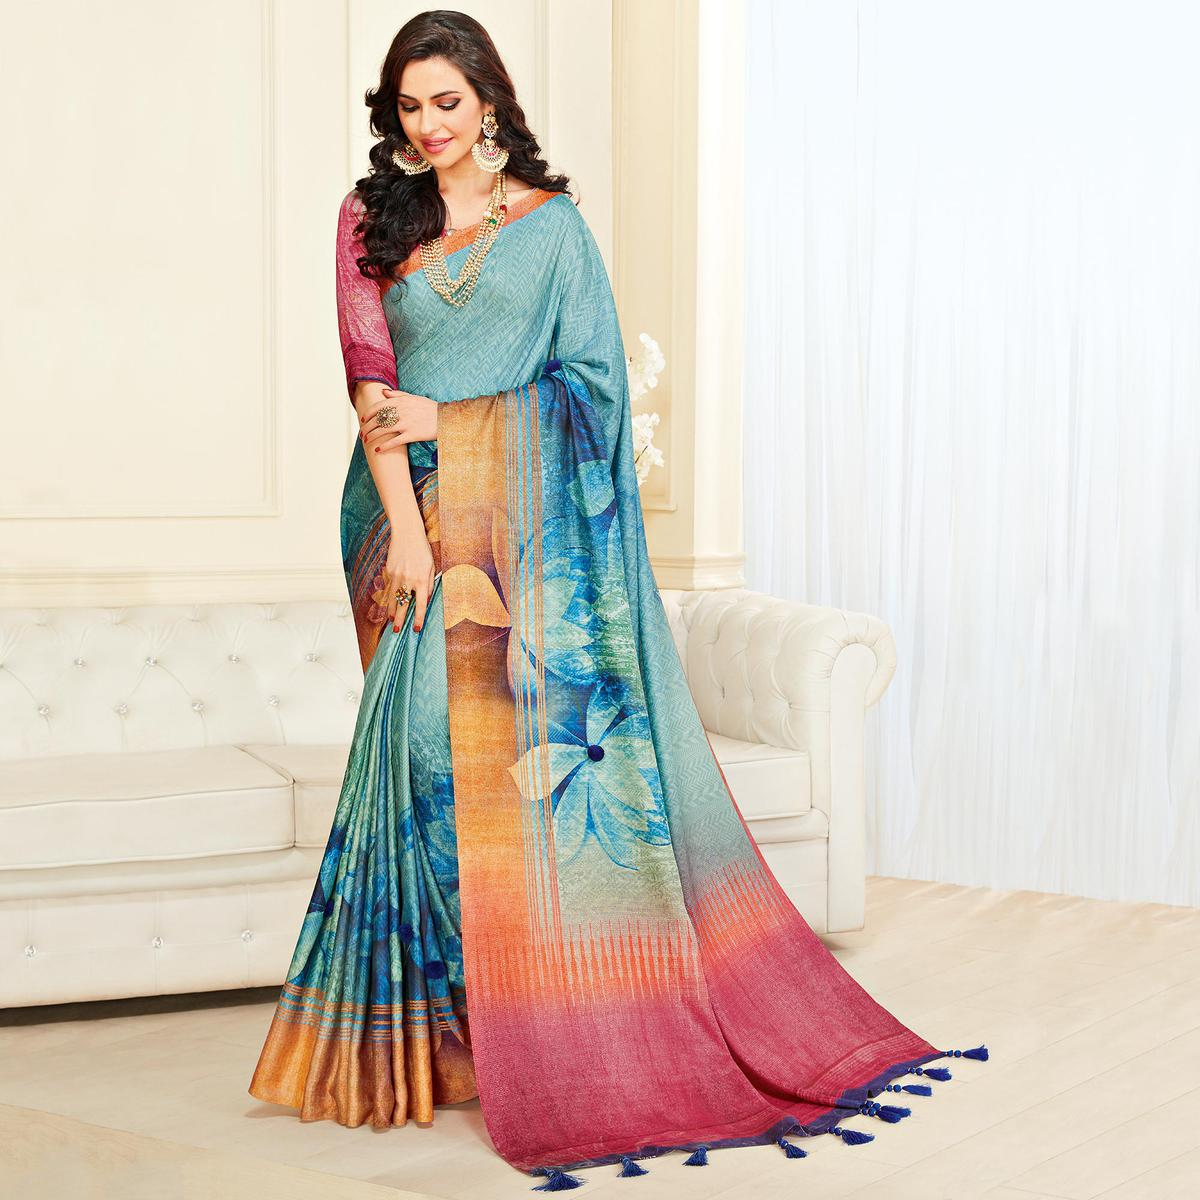 Starring Aqua Blue Colored Casual Wear Printed Jute Silk Saree